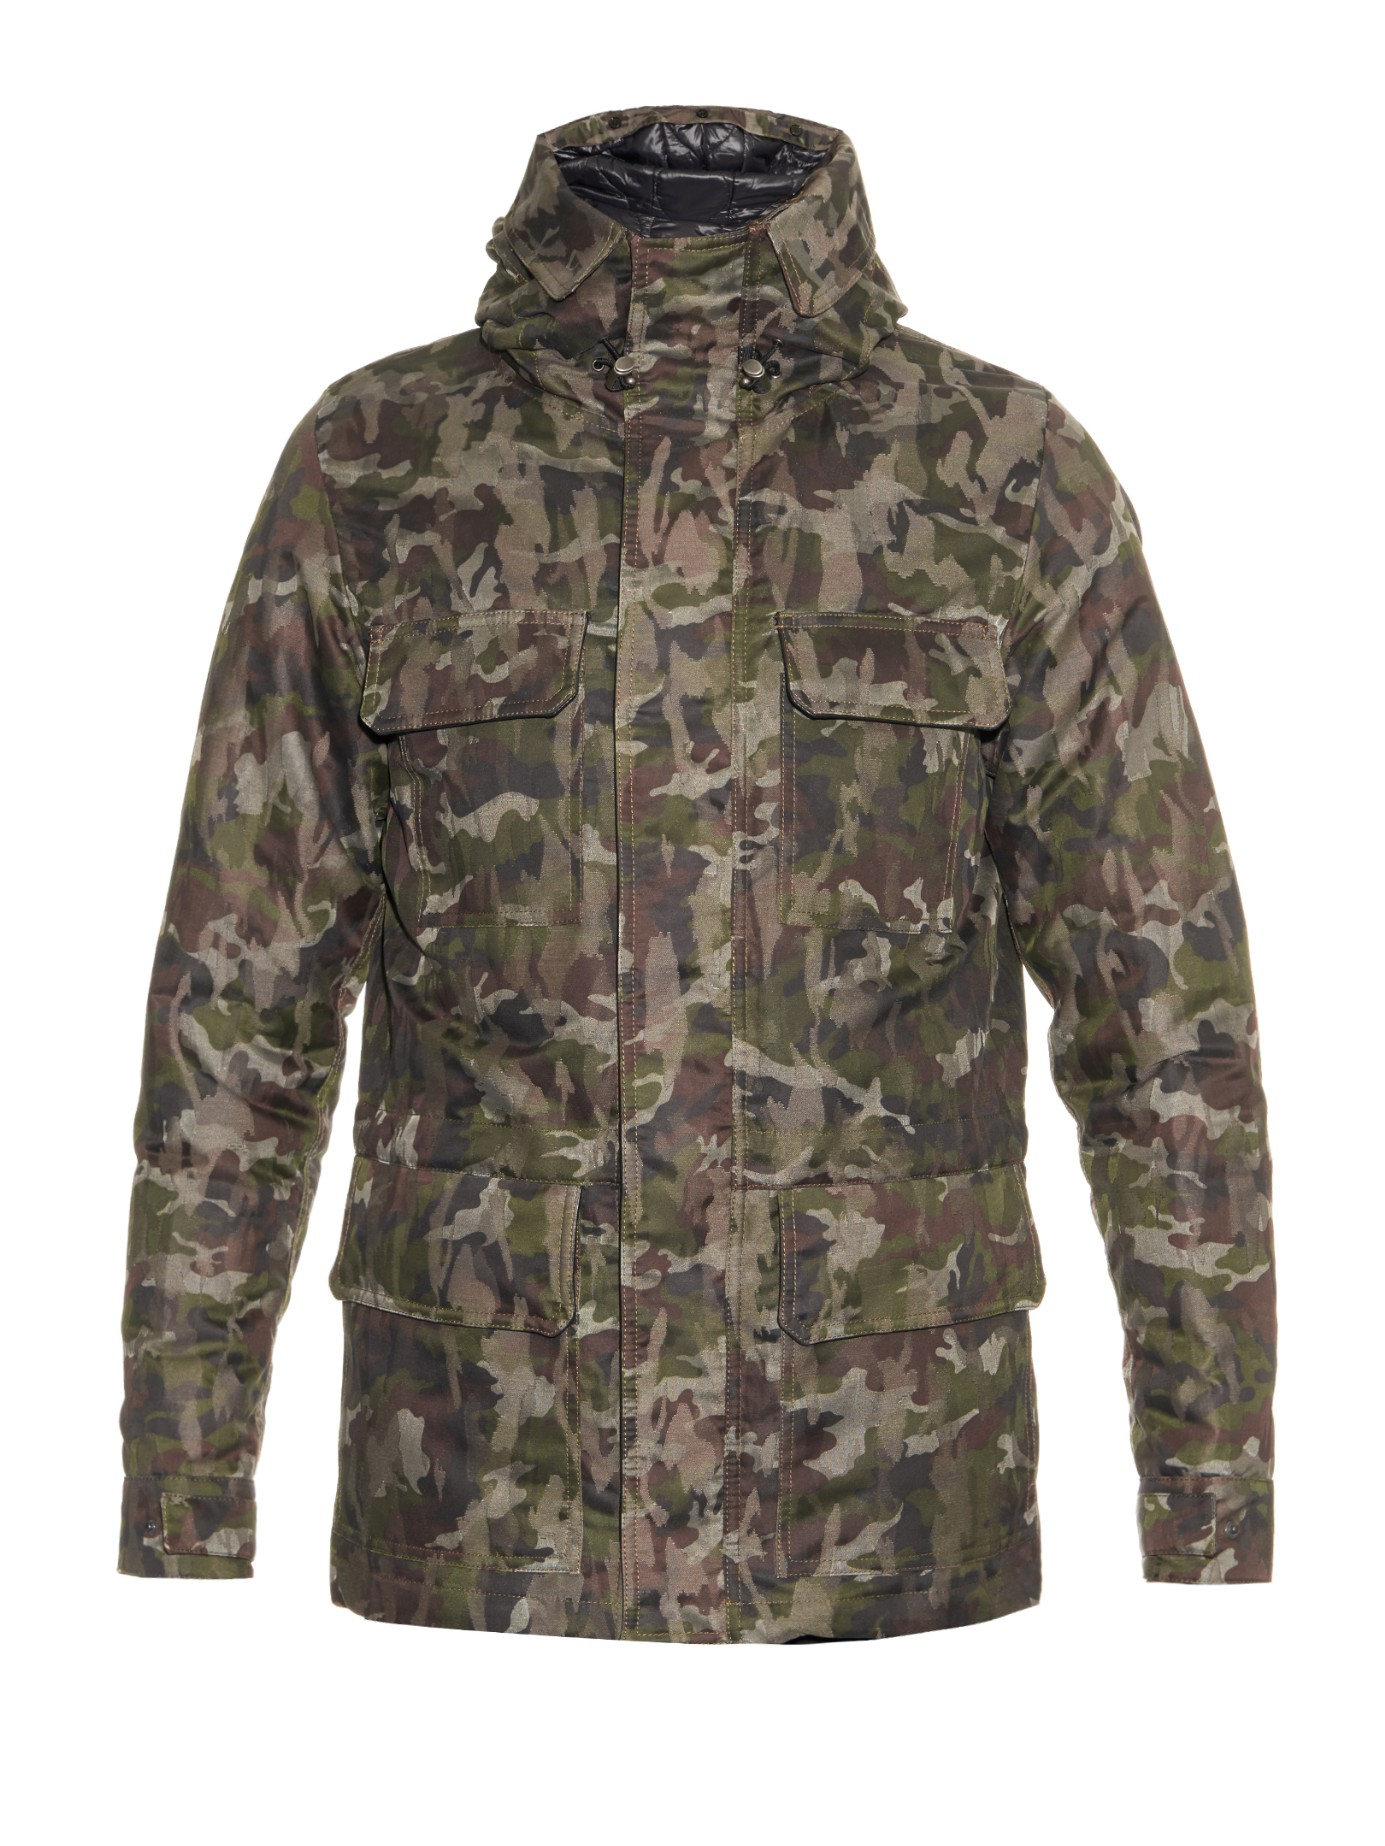 lyst dolce gabbana camouflage jacquard field jacket in green for men. Black Bedroom Furniture Sets. Home Design Ideas